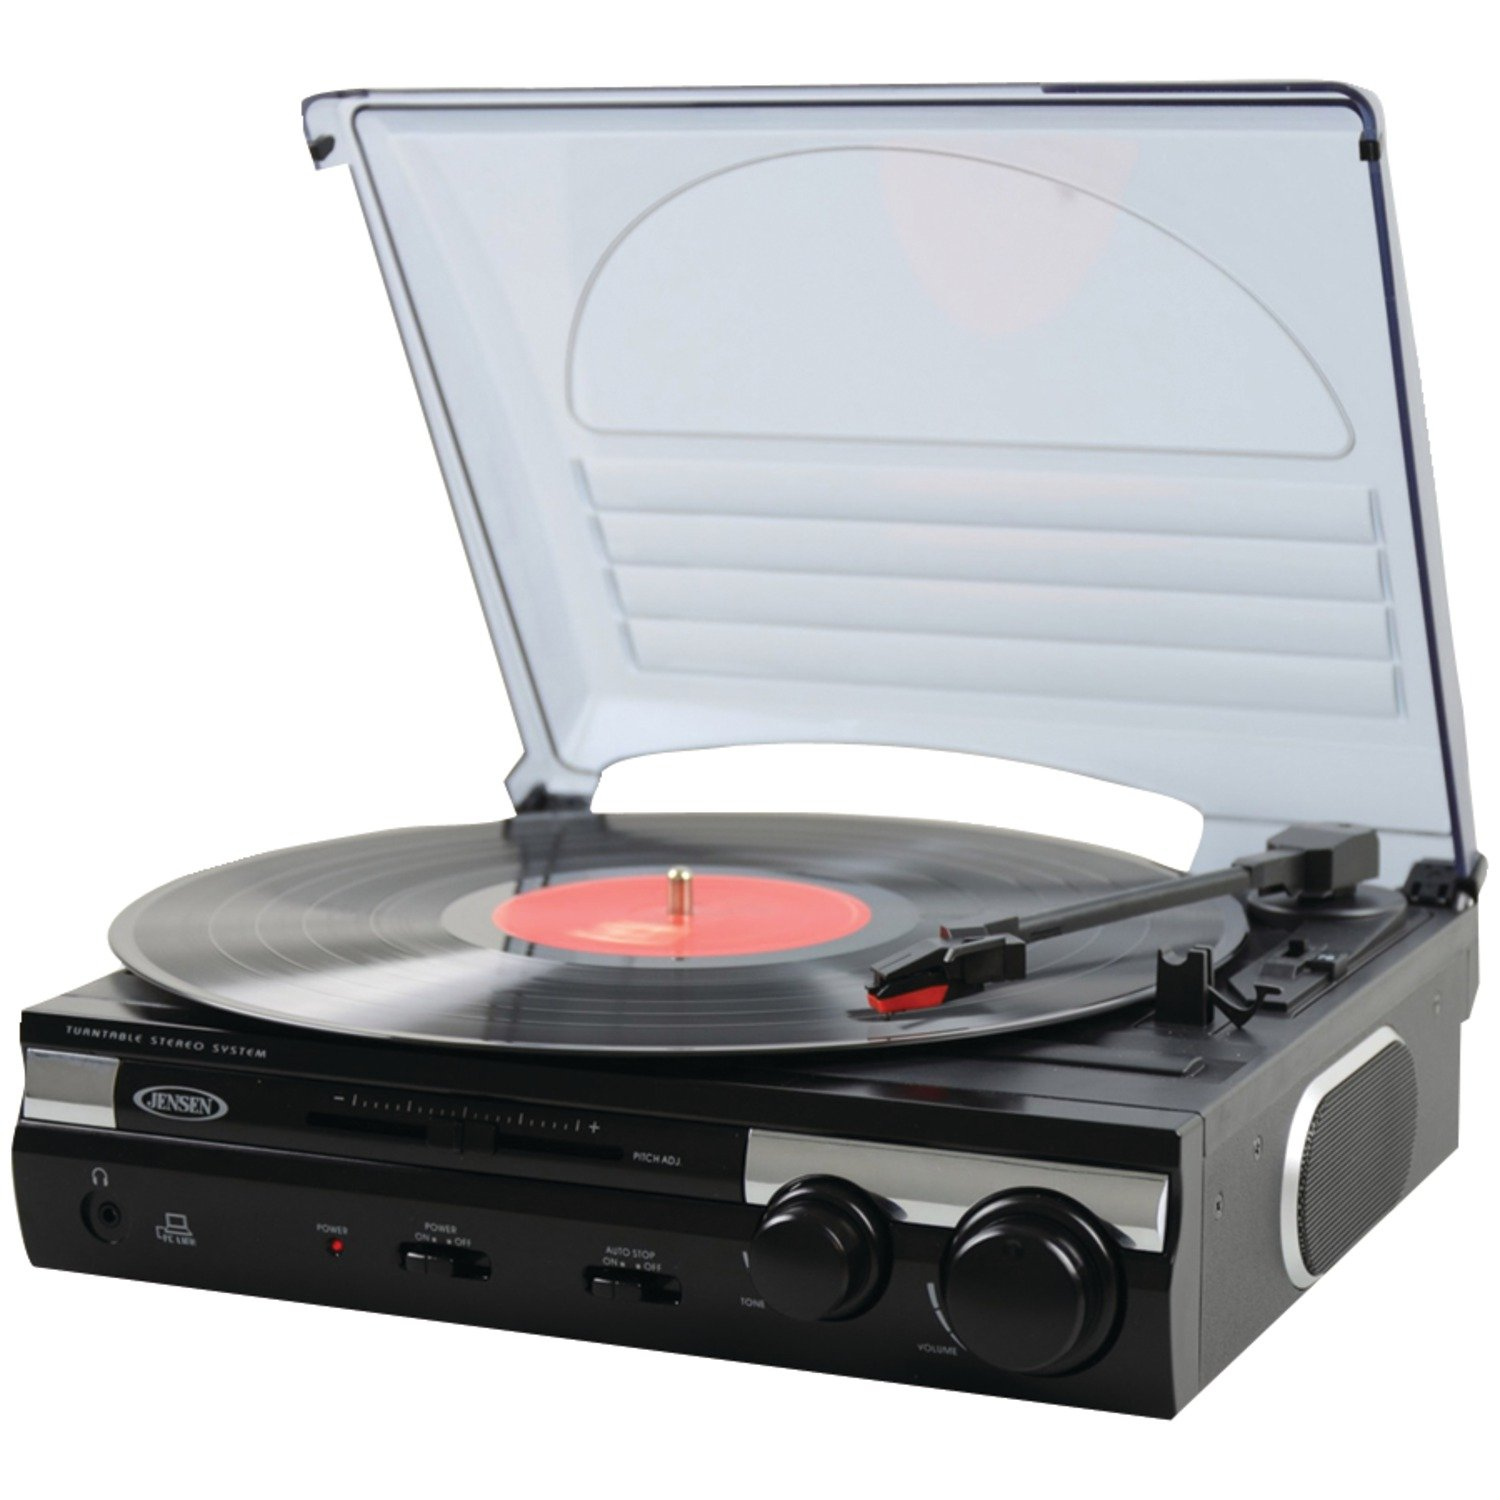 Exceptional Amazon.com: Jensen JTA 230 3 Speed Stereo Turntable With Built In Speakers:  Home Audio U0026 Theater